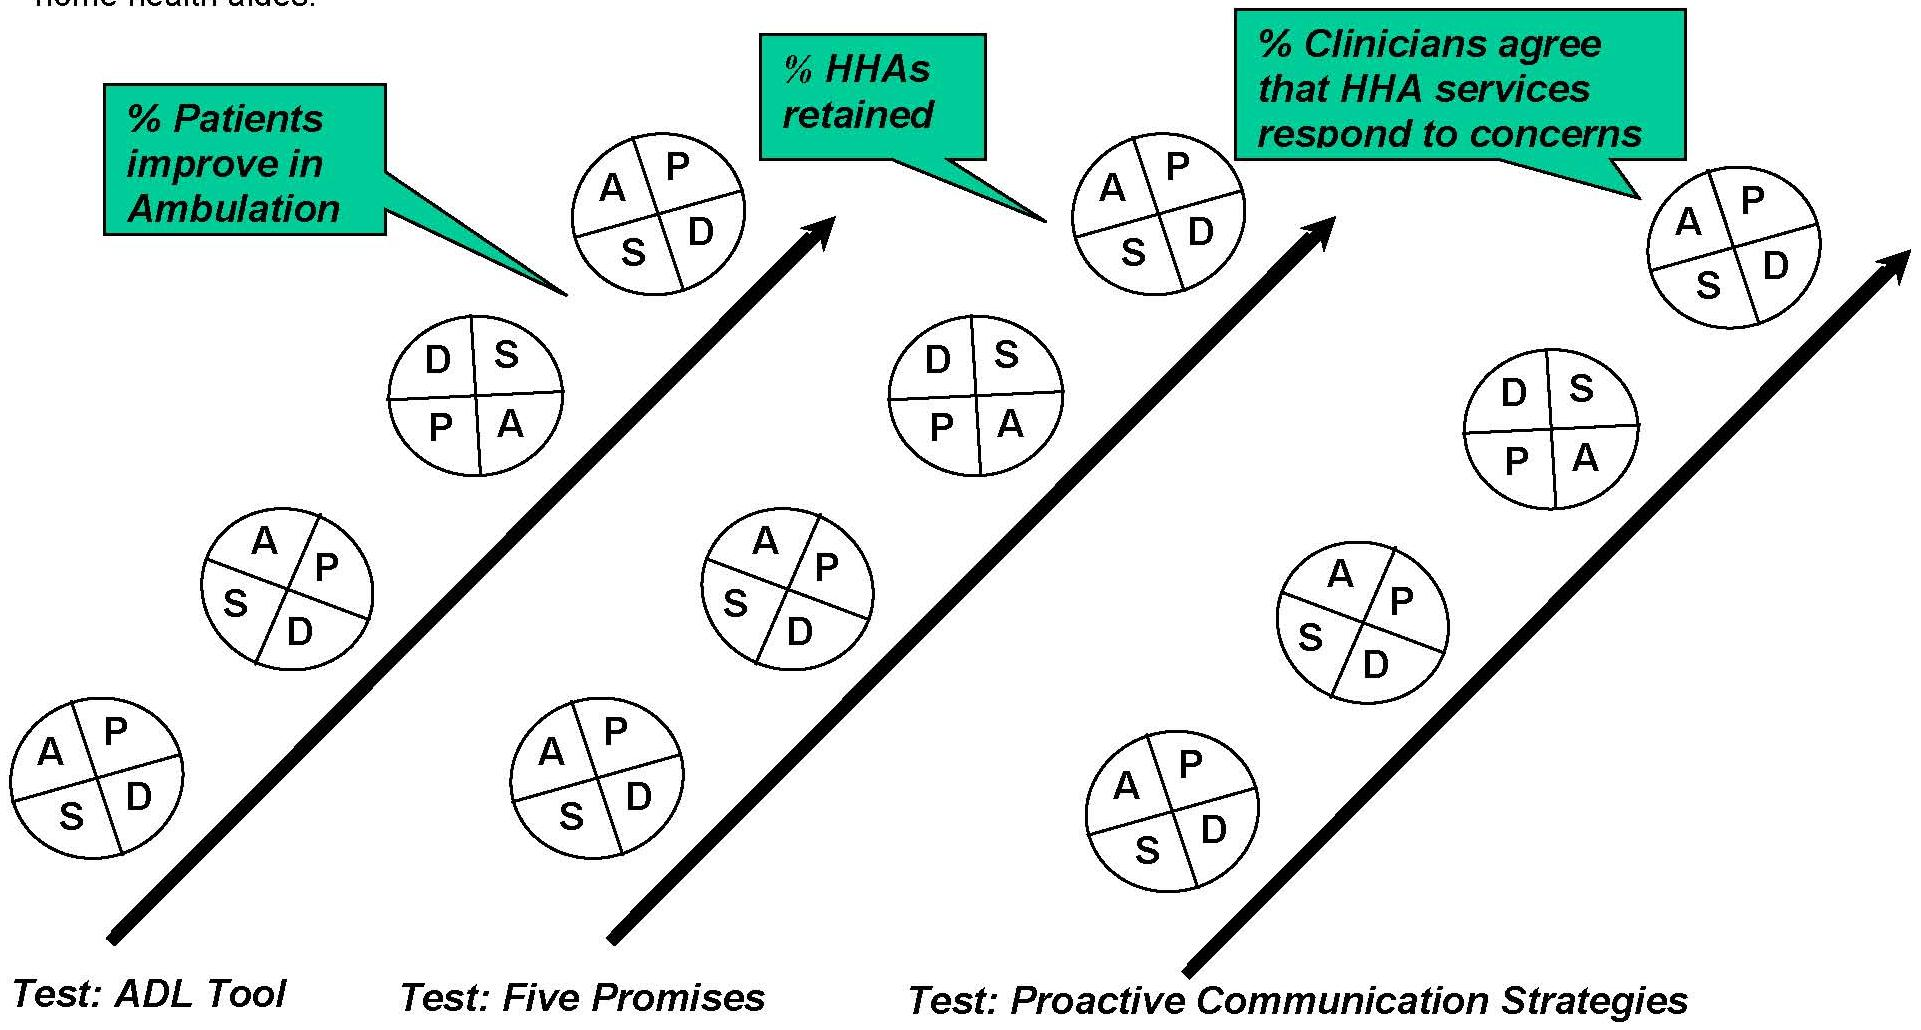 TEST: ADL Tool -- % Patients Improve to Ambulation before third and fourth test. TEST: FIVE PROMISES -- % HHAs retained near beginning of fourth test. TEST: PROACTIVE COMMUNICATION STRATEGIES -- % Clinicians agree that HHA services respond to concerns midw